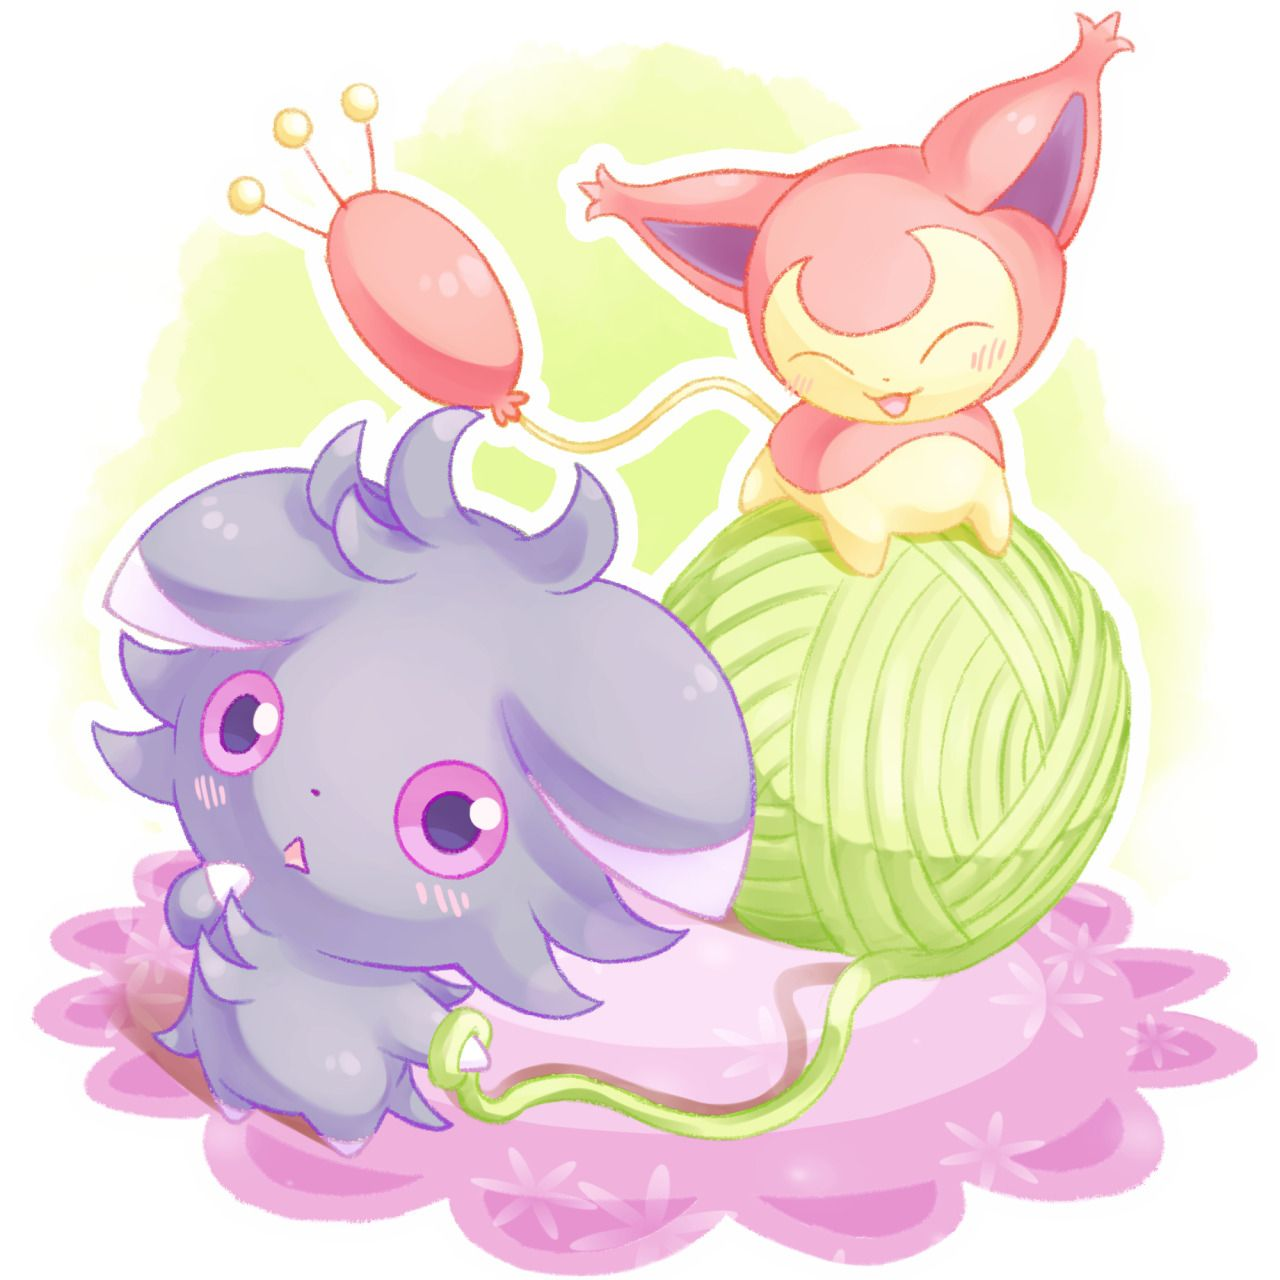 Skitty and espurr nyaapa meowstic and other pokemon cute pokemon pokemon fan art cat pokemon - Pokemon skitty ...